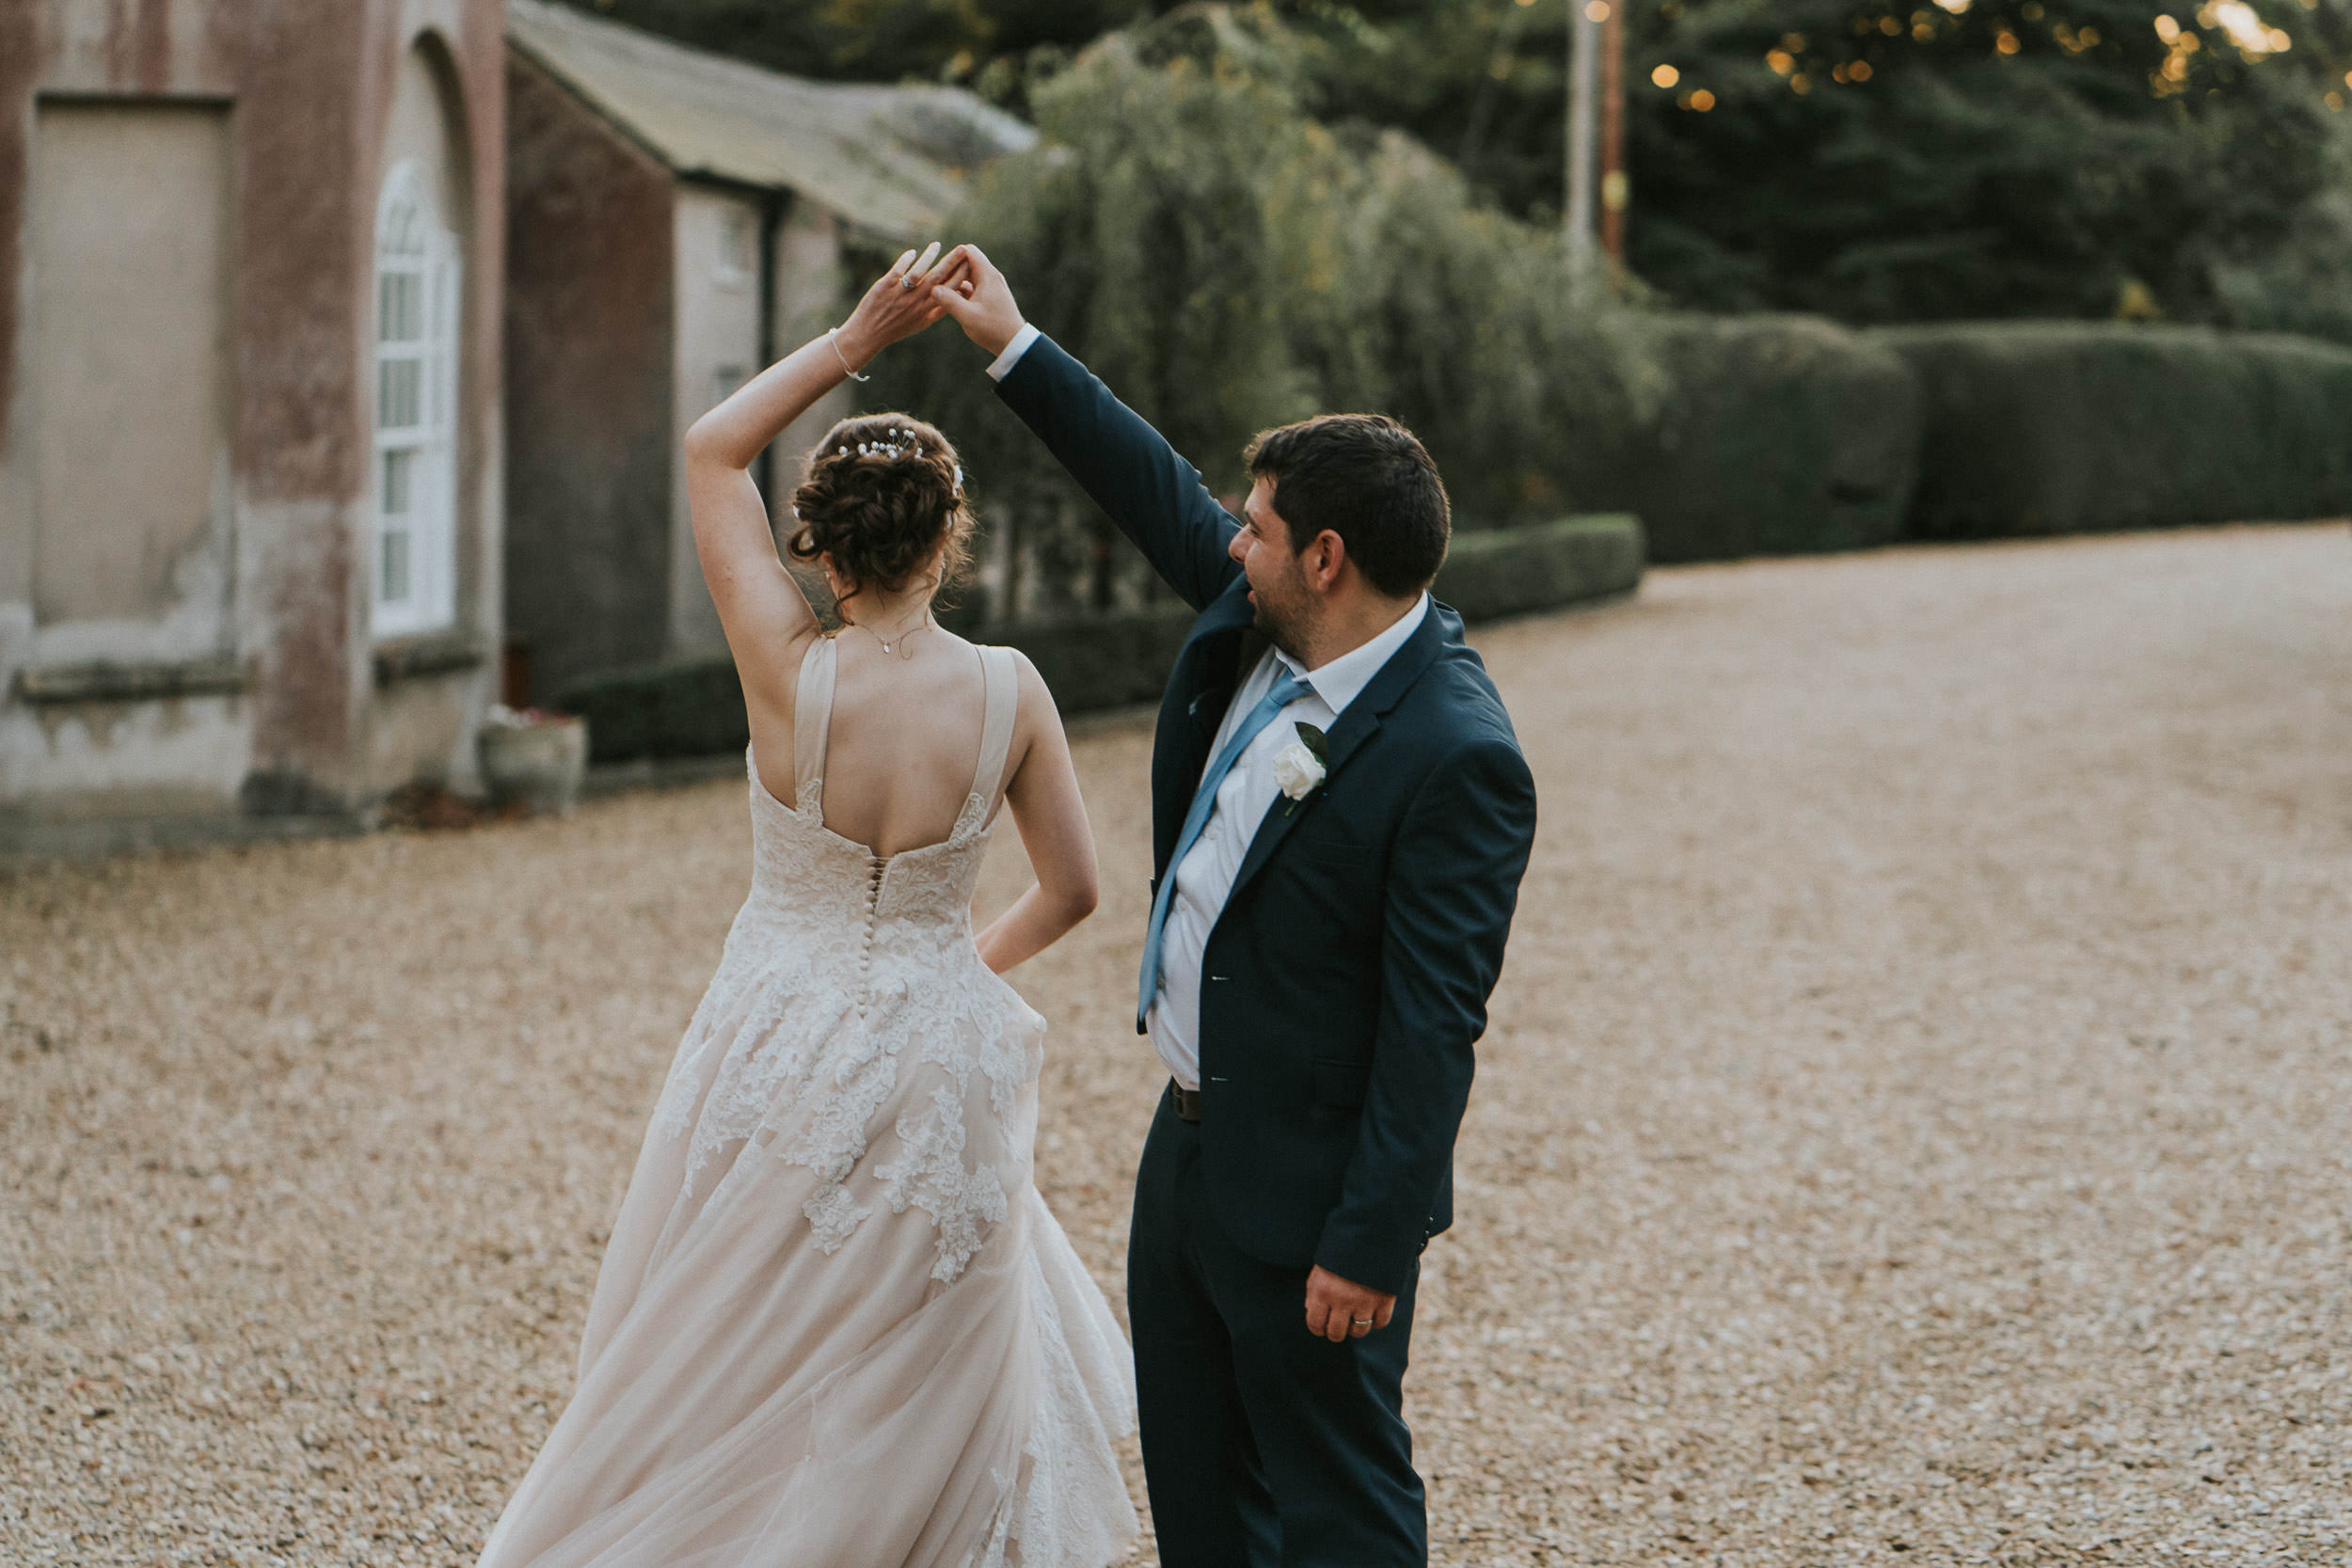 Pennard House Wedding - Bride and Groom Portrait